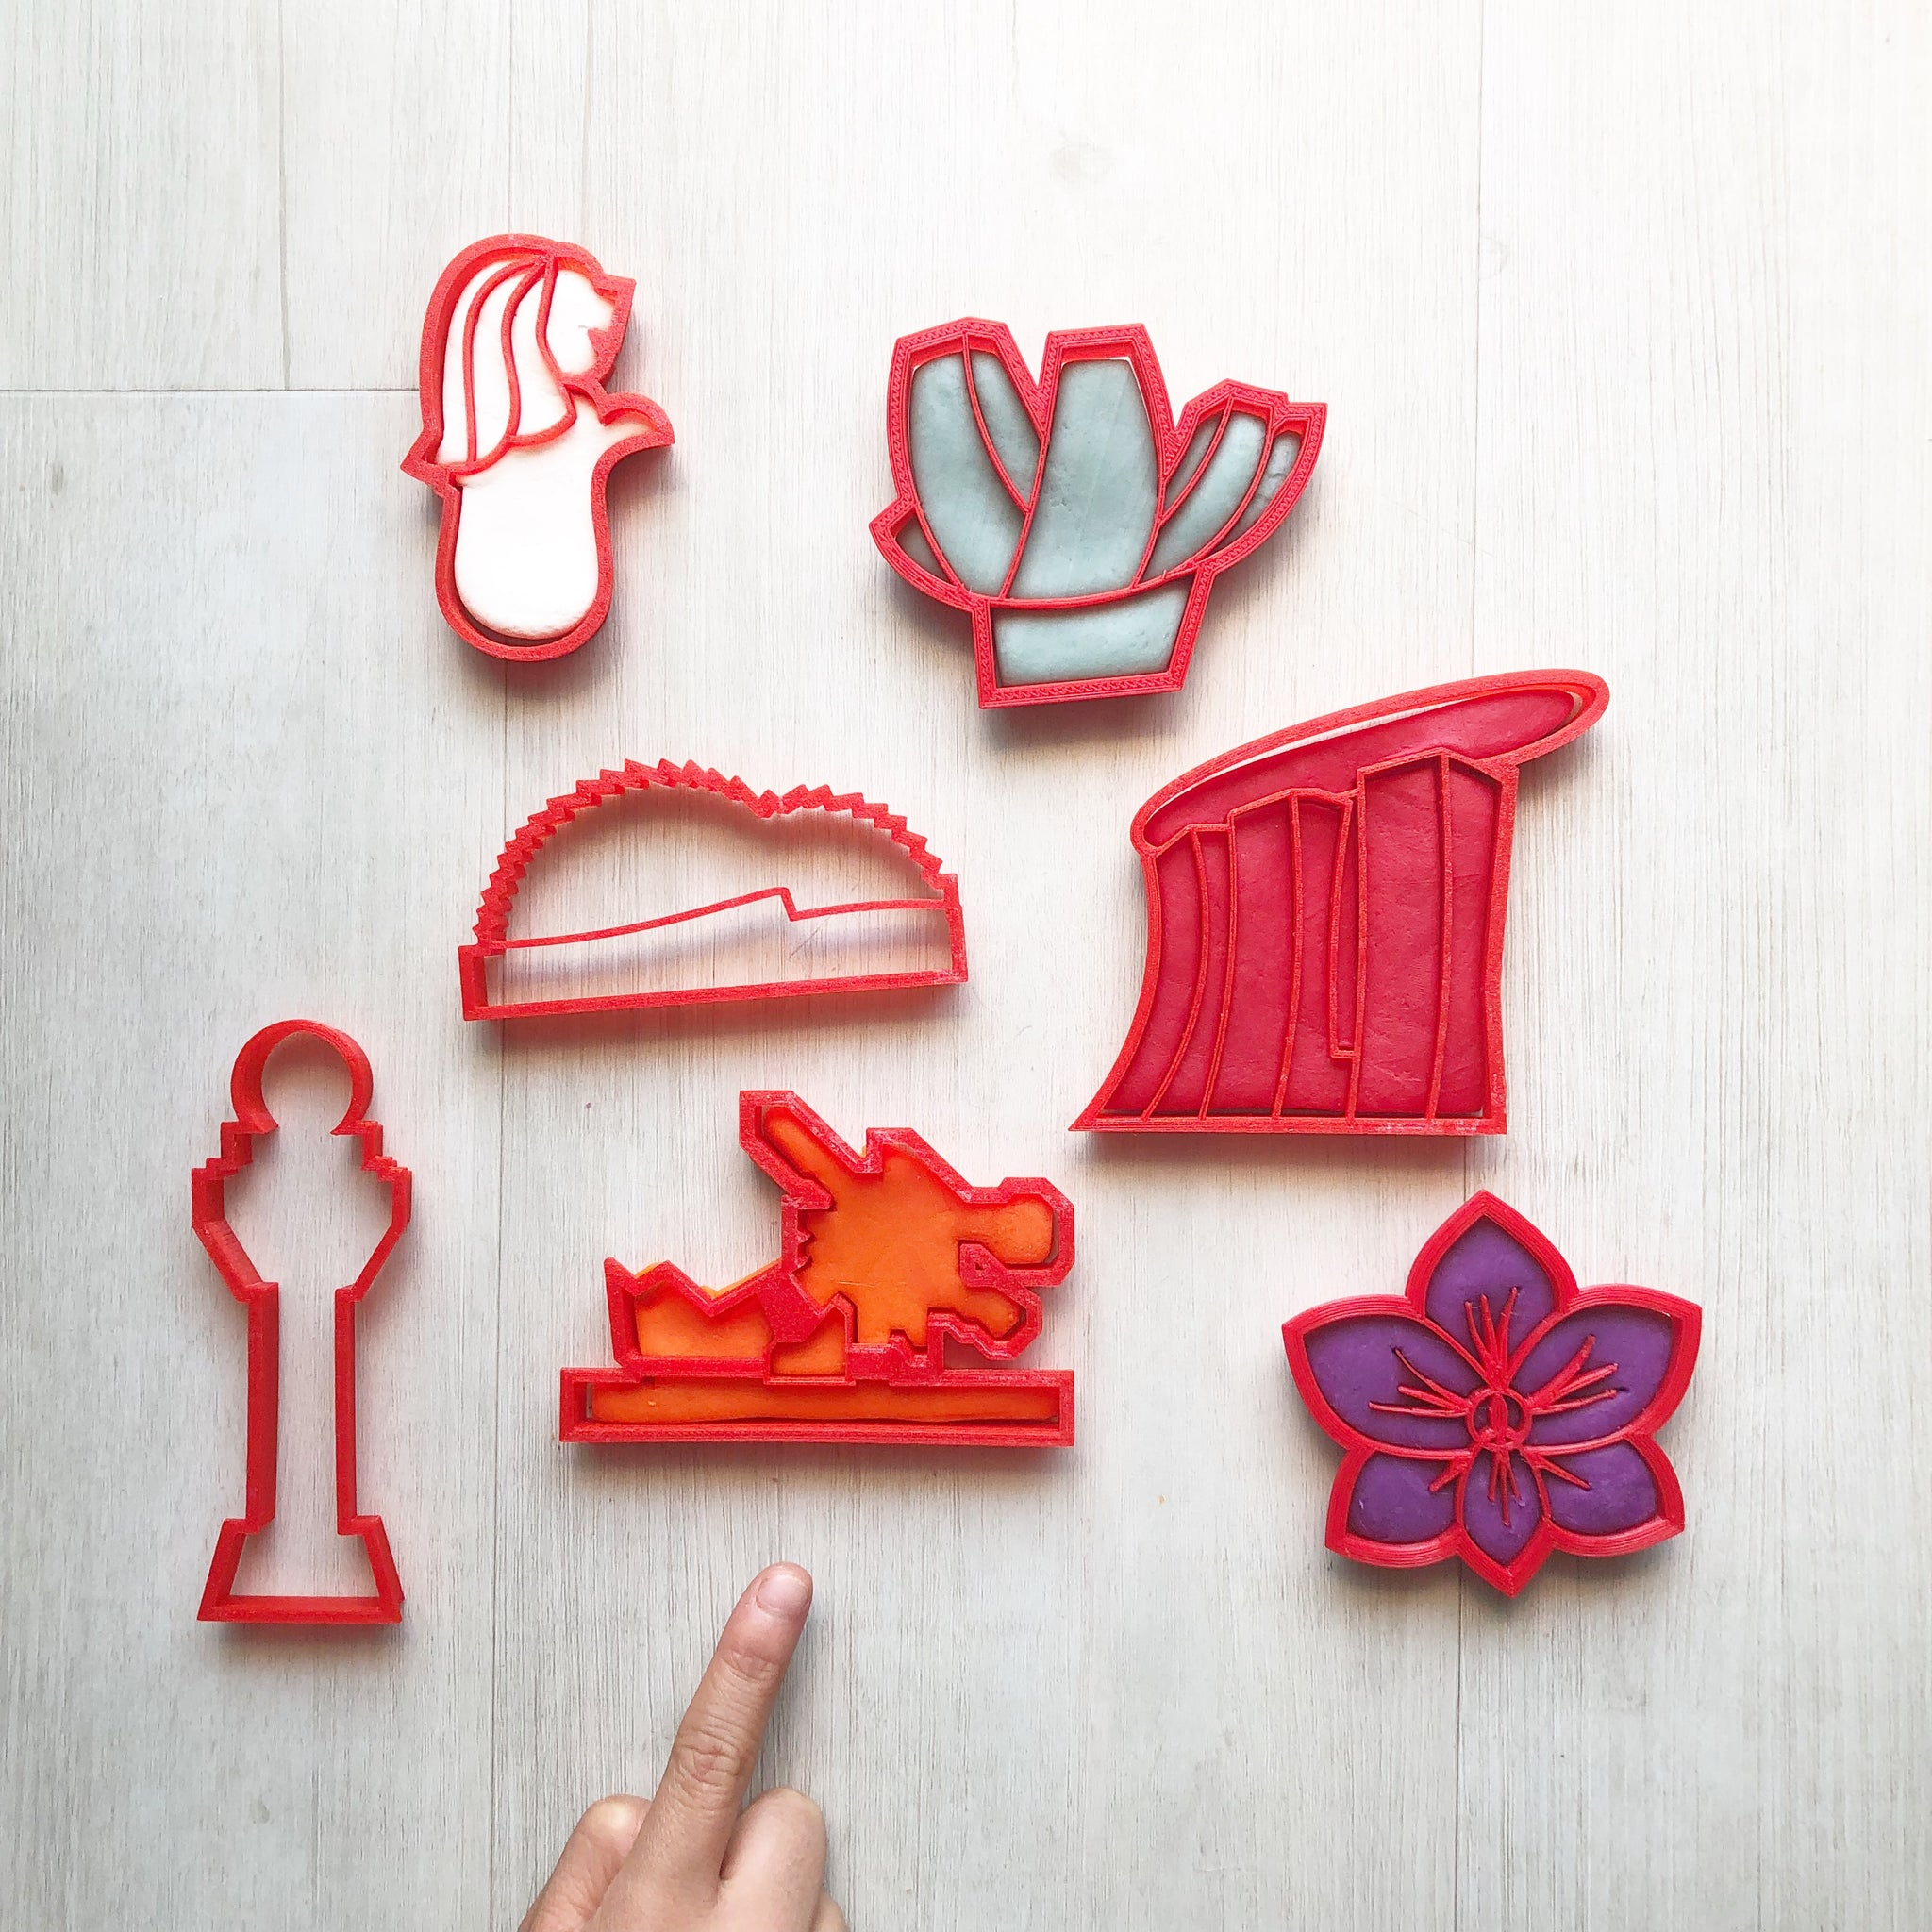 Singapore Heritage Playdough Cutters Collection I